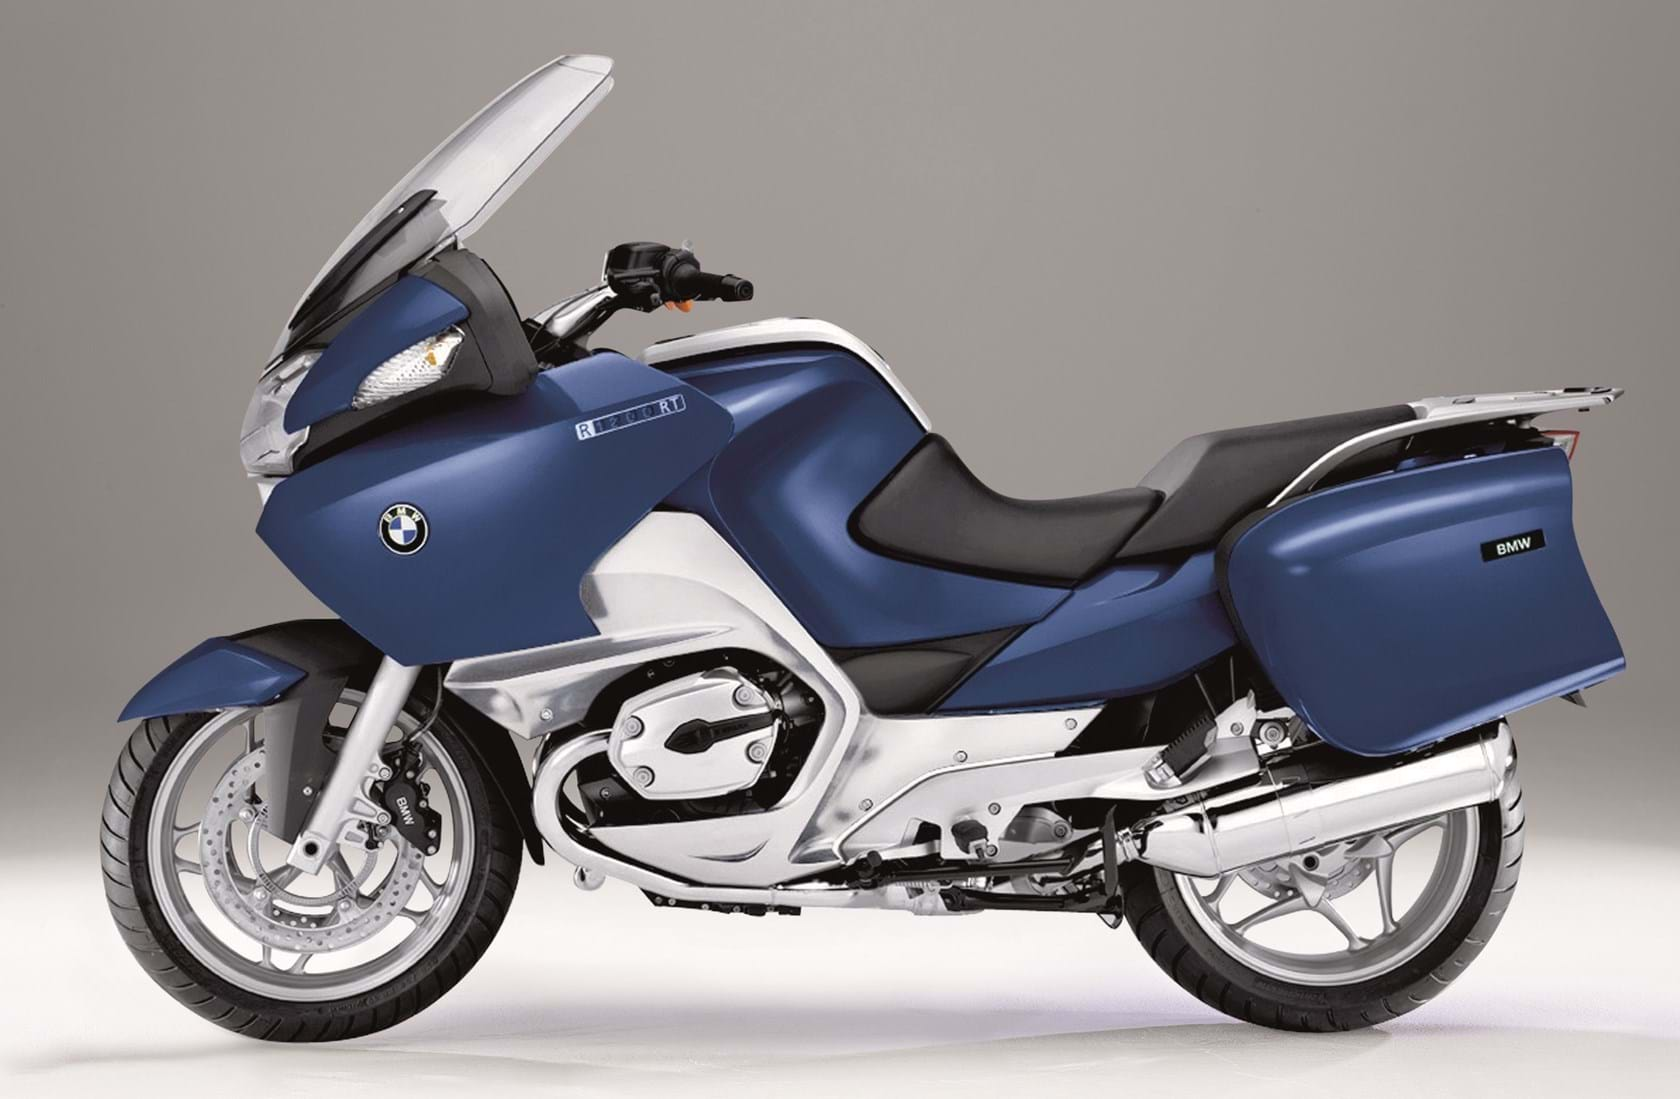 Review Bmw R1200rt For Sale The Bike Market Headlamp Wiring Diagram